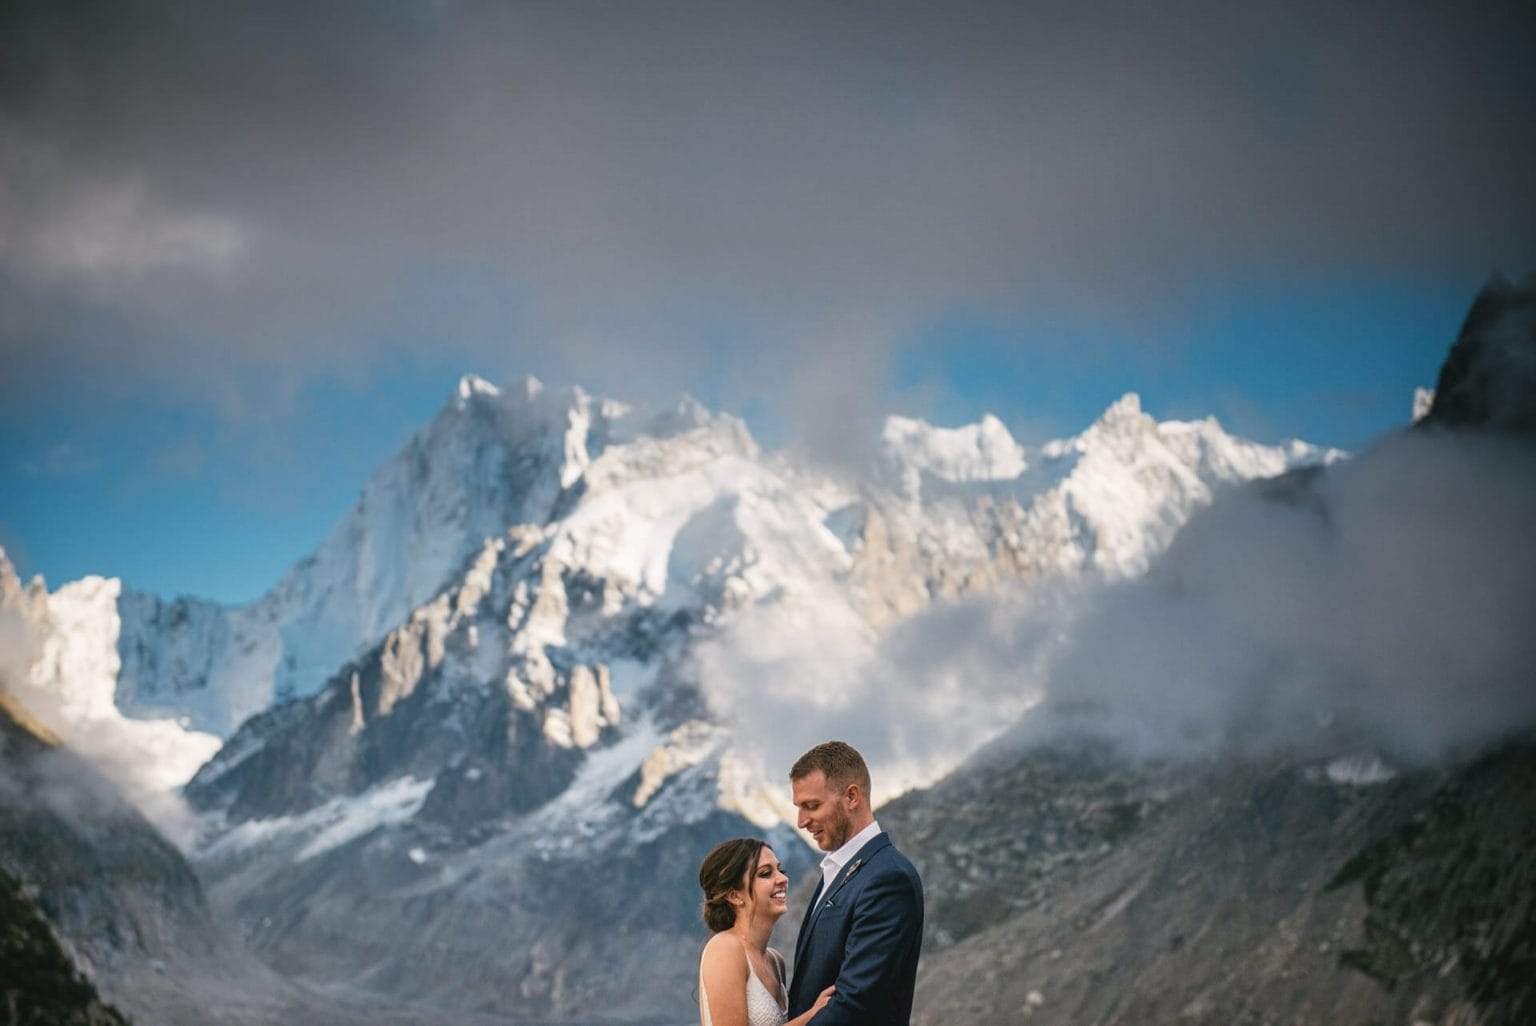 Elopement in the French Alps